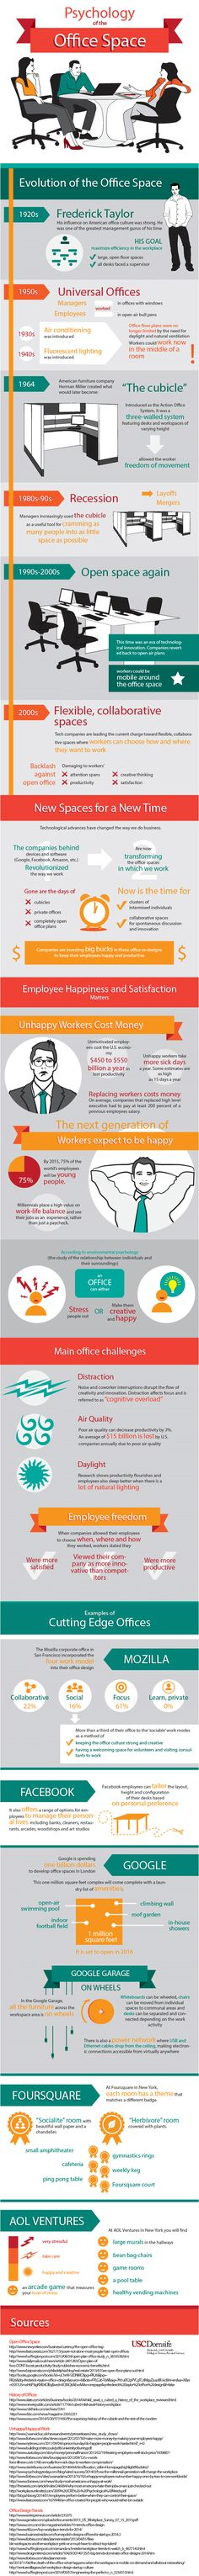 "Office design trends come in and out of fashion quicker than one can say ""treadmill desk"", but there's a good reason why managers are always obsessing about ways to improve their work spaces; it turns out that an office space can have a huge psychological Corporate Office Design, Office Space Design, Workplace Design, Office Designs, Cool Office, The Office, Office Ideas, Small Office, Design Thinking"